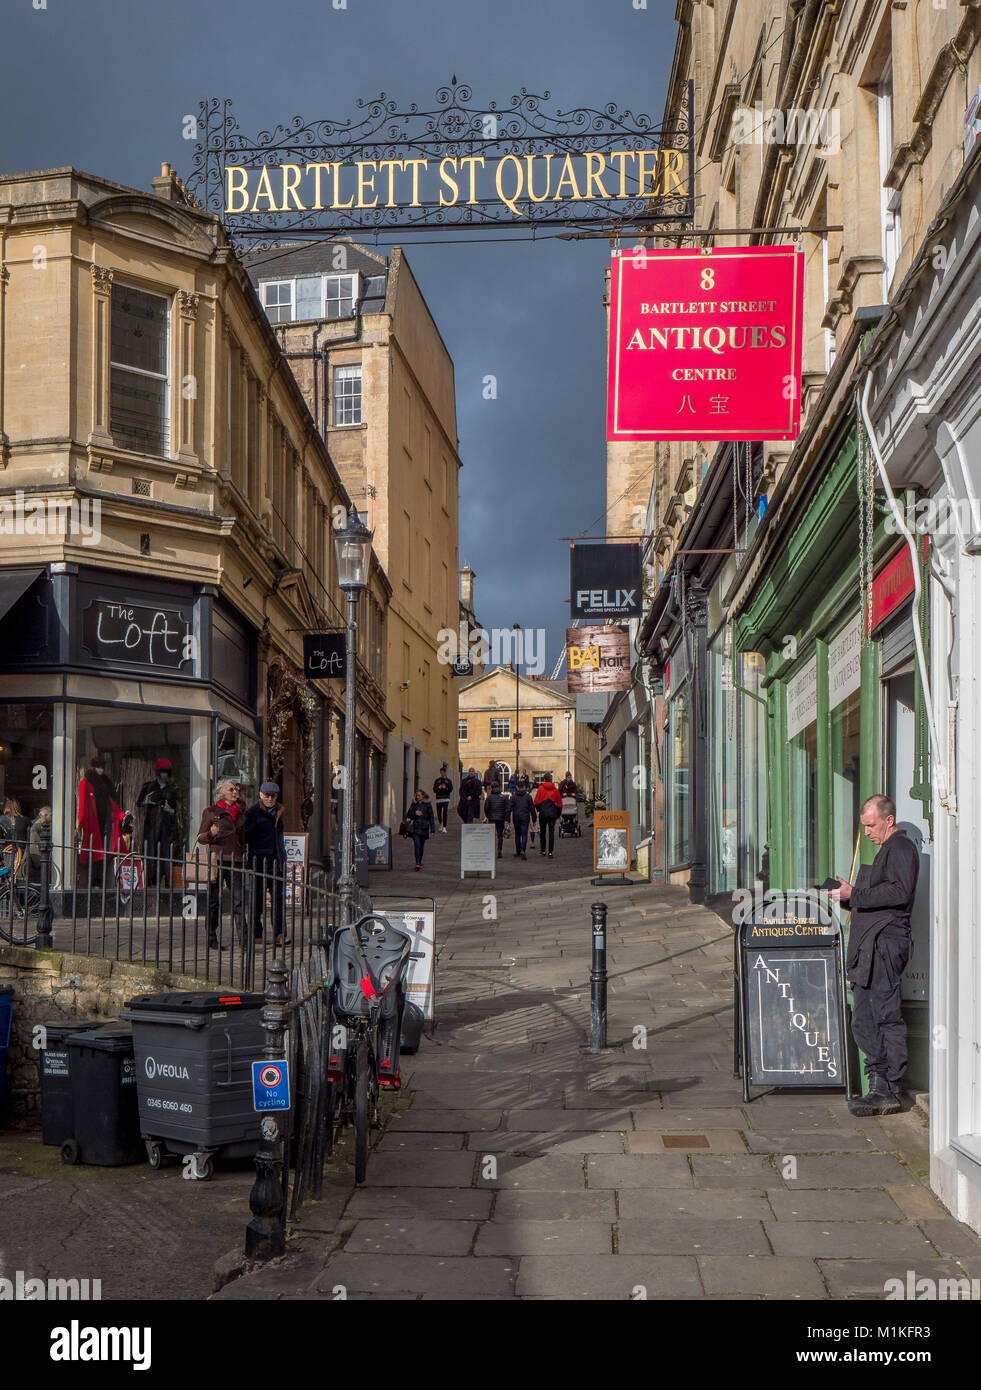 The Bartlett Street Quarter of Bath with its traffic free lanes and stylish shops and cafes - Somerset UK - Stock Image